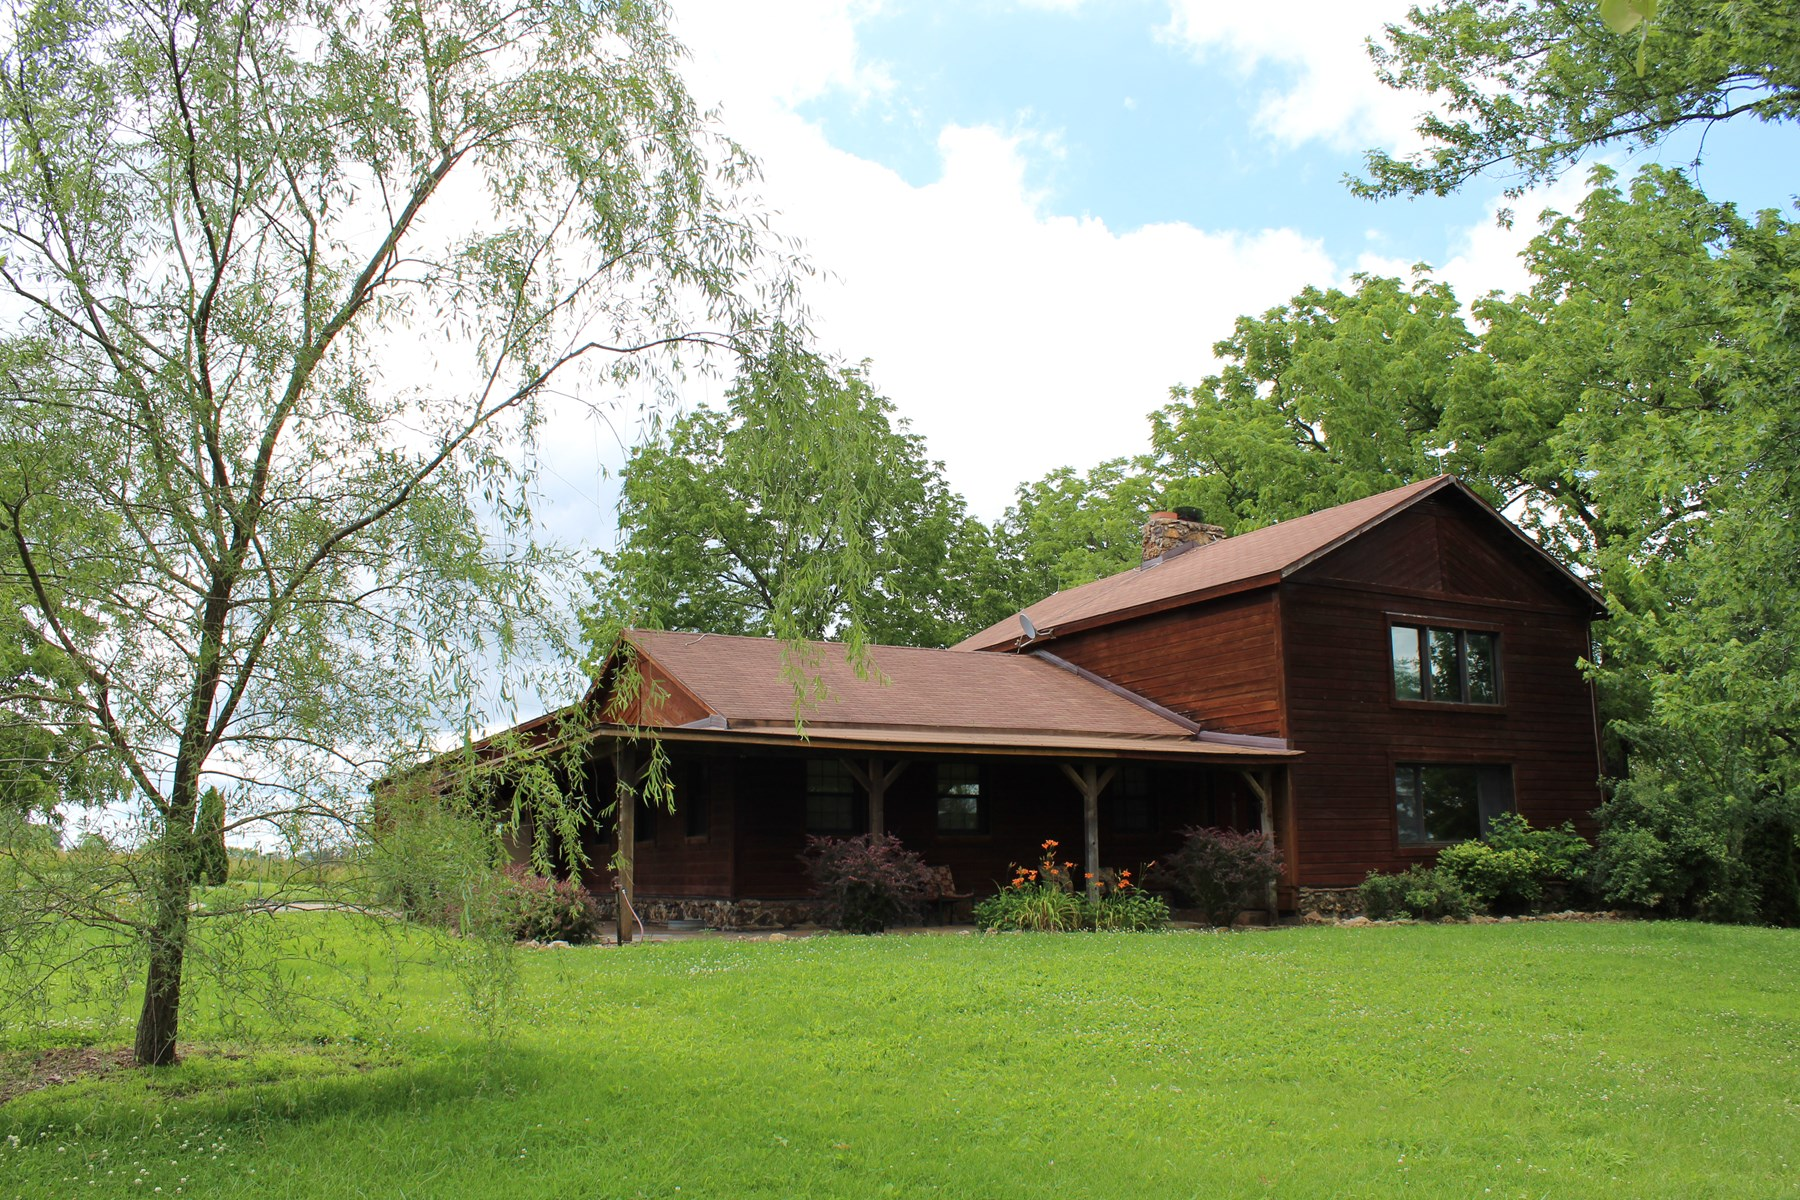 Rustic Home on Acreage with Creek For Sale in Southern MO